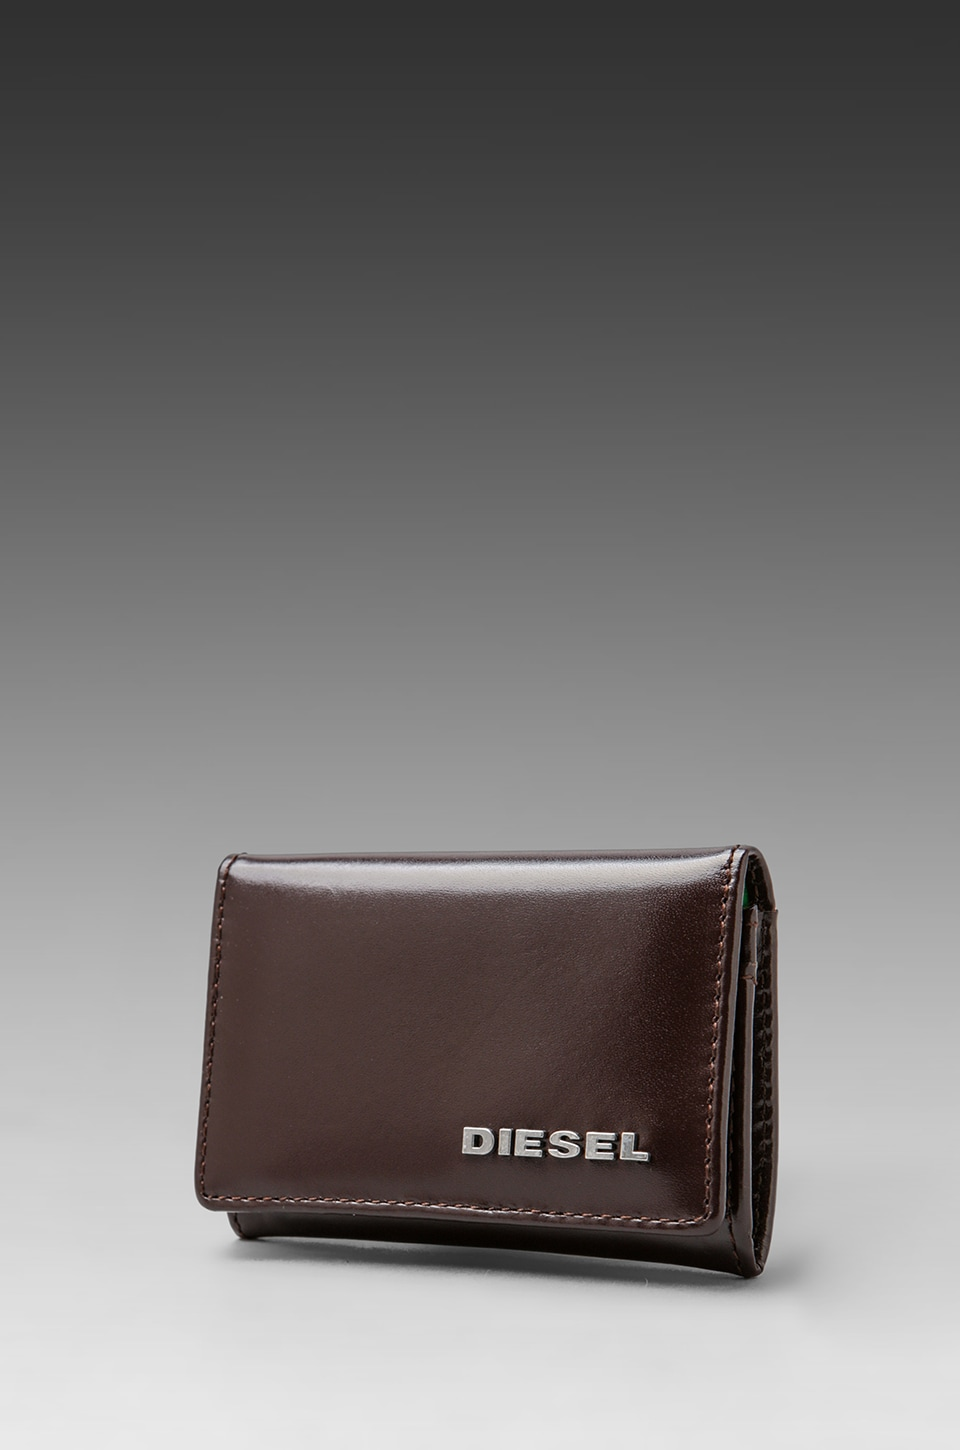 Diesel Fresh & Bright Marley in Black/Green Sheen